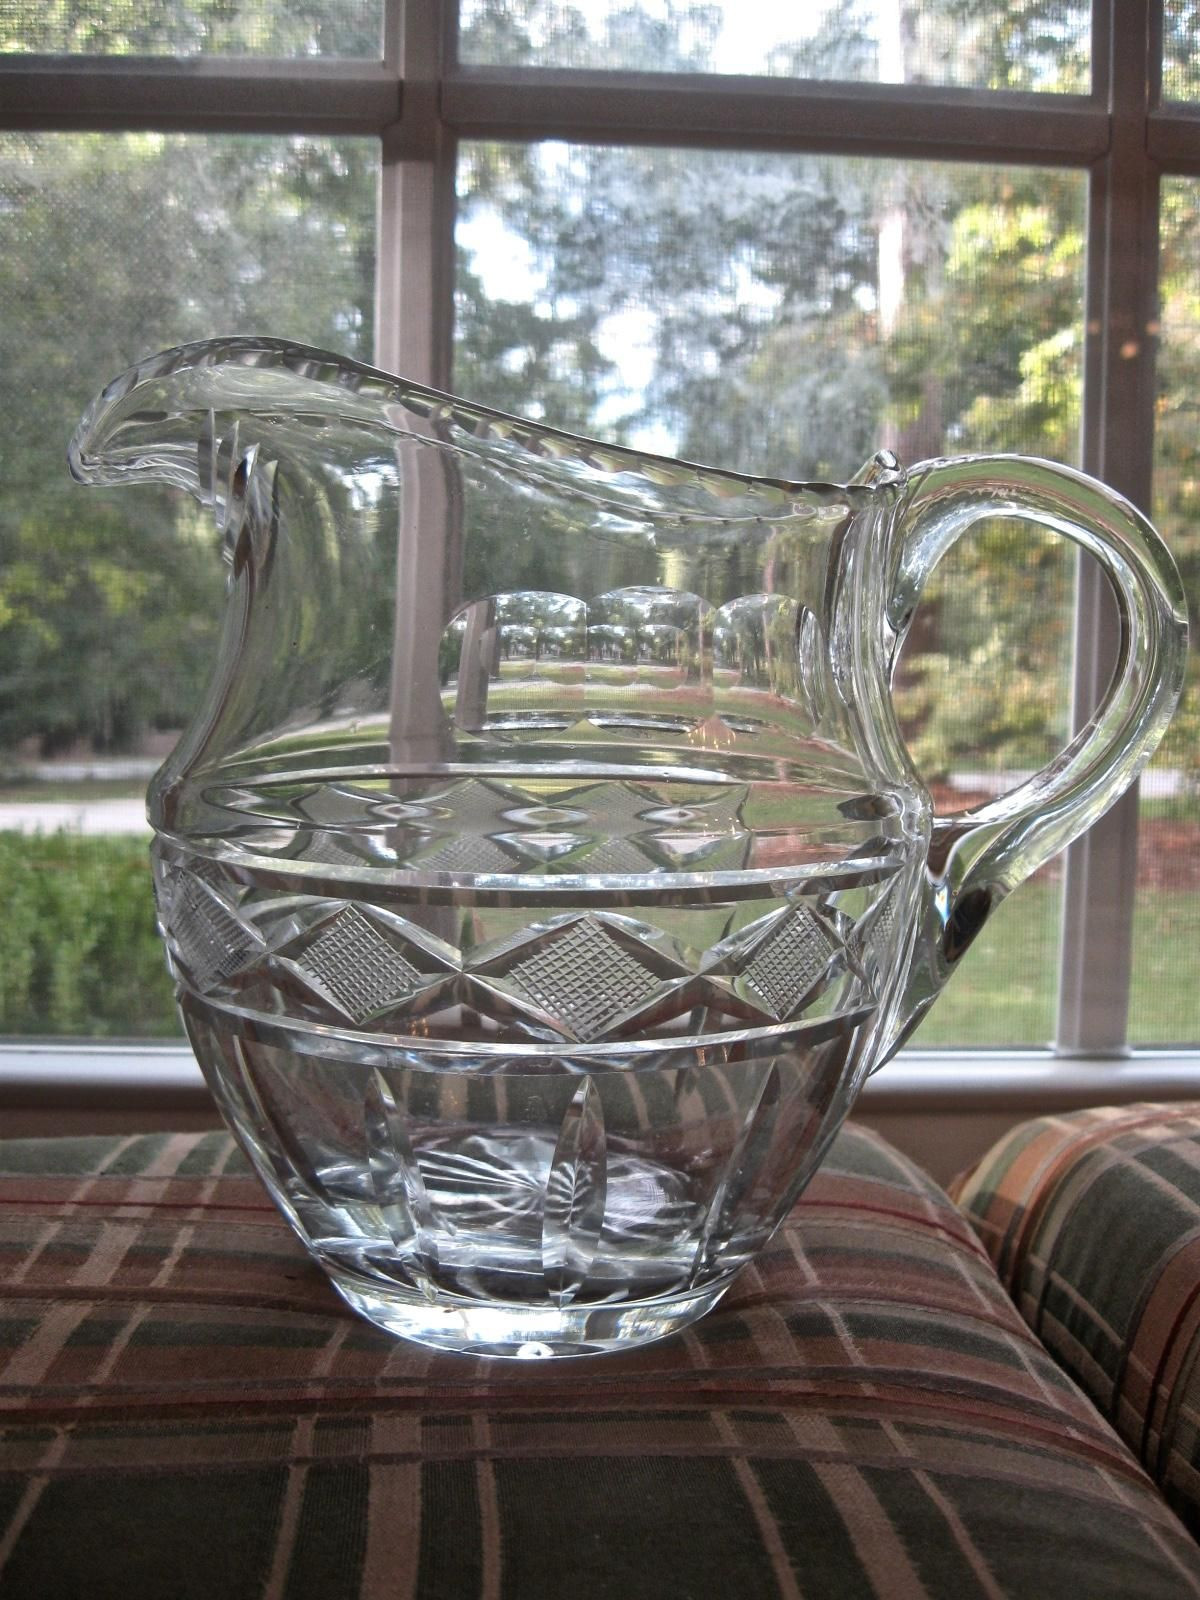 rainbow glass vase of 1954 steuben glass spiral bowl don pollard design regarding early 1800s cut glass water pitcher